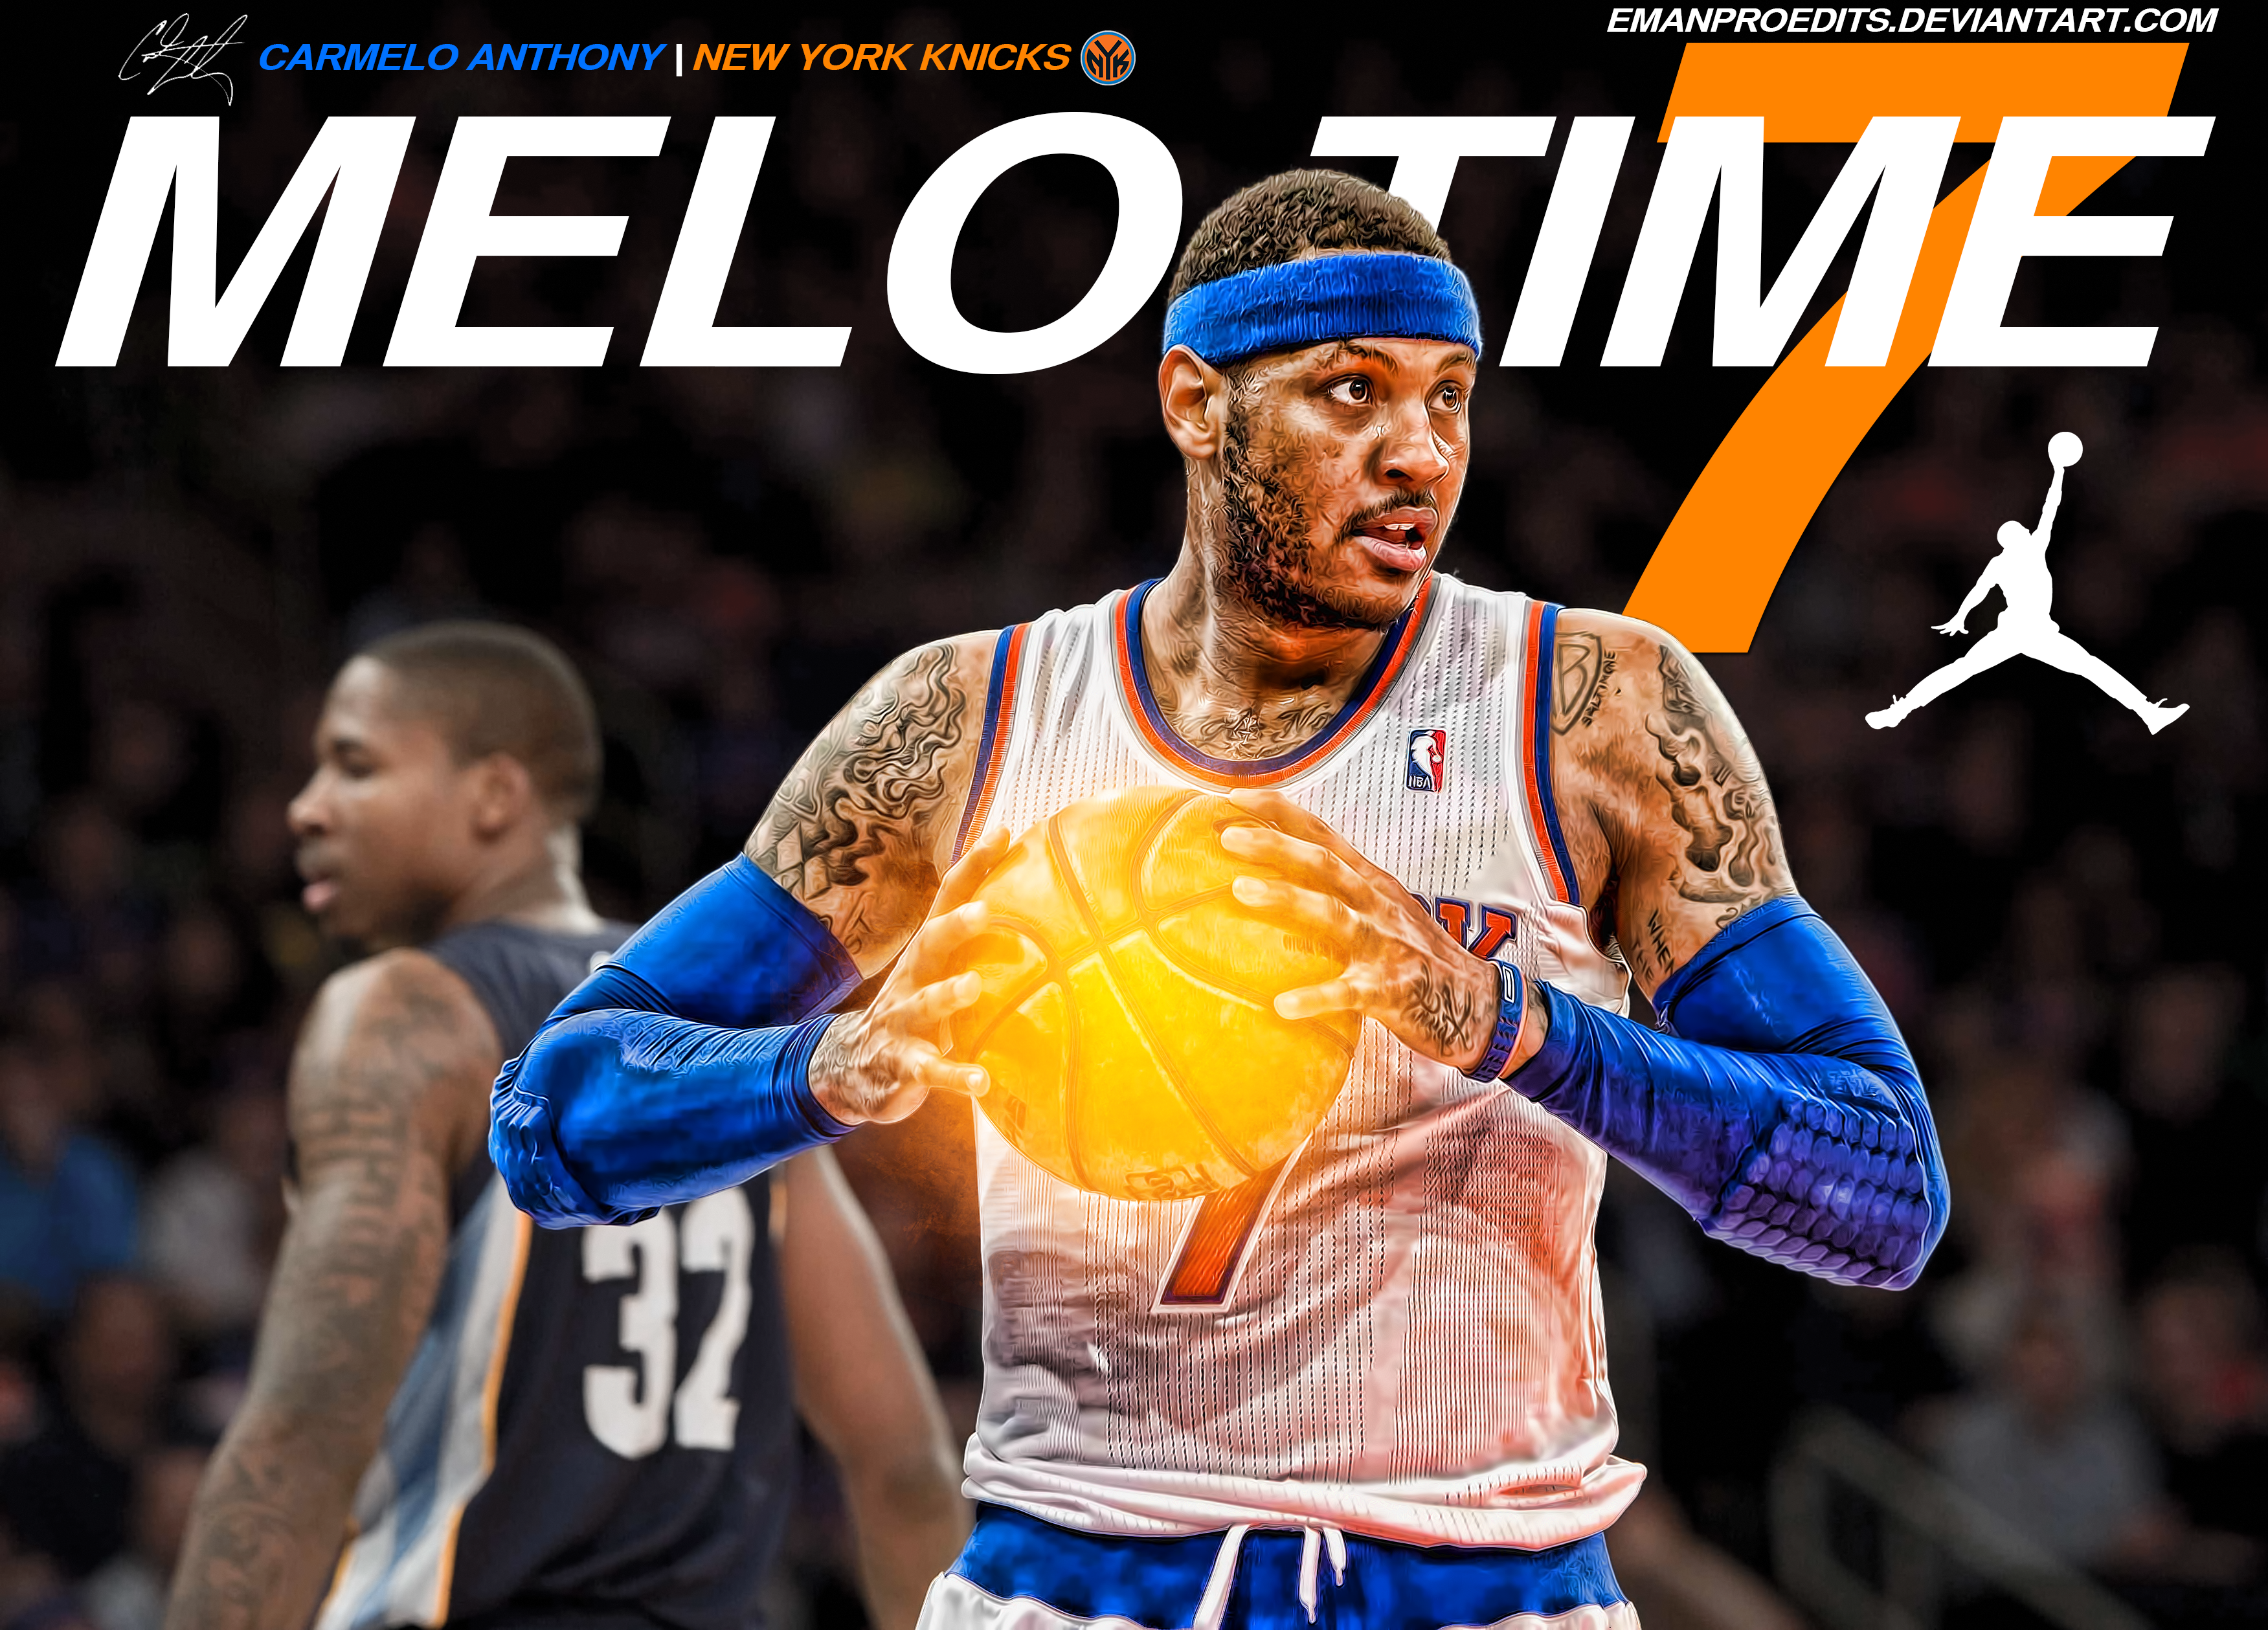 Anthony wallpaper by emanproedits on deviantart carmelo anthony wallpaper by emanproedits carmelo anthony wallpaper by emanproedits voltagebd Images